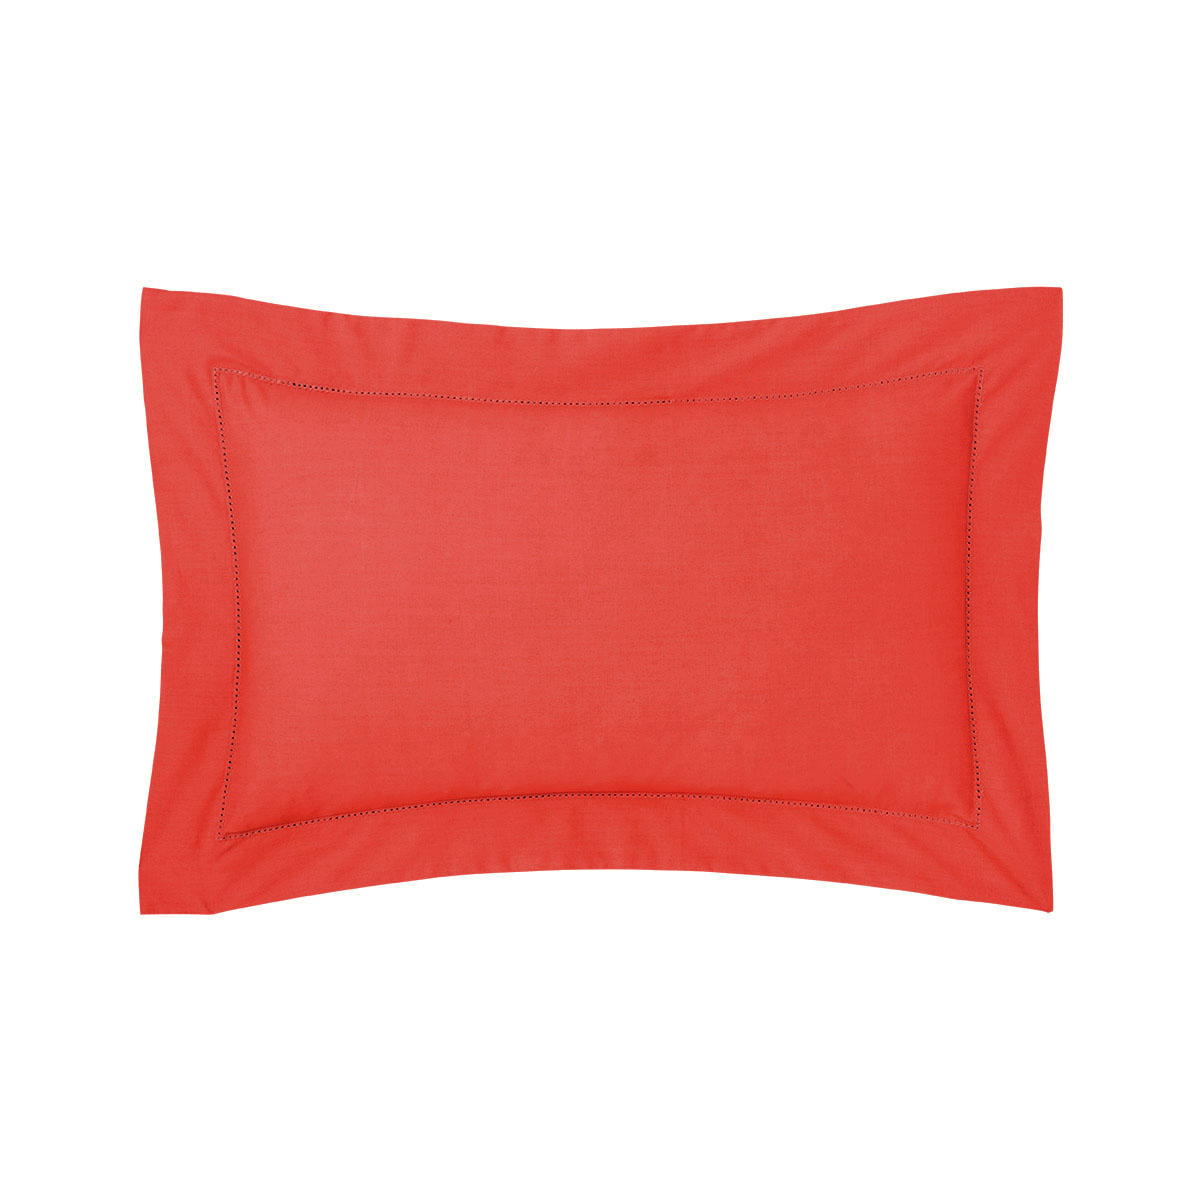 Taie d'oreiller percale Rouge 30 x 40 cm